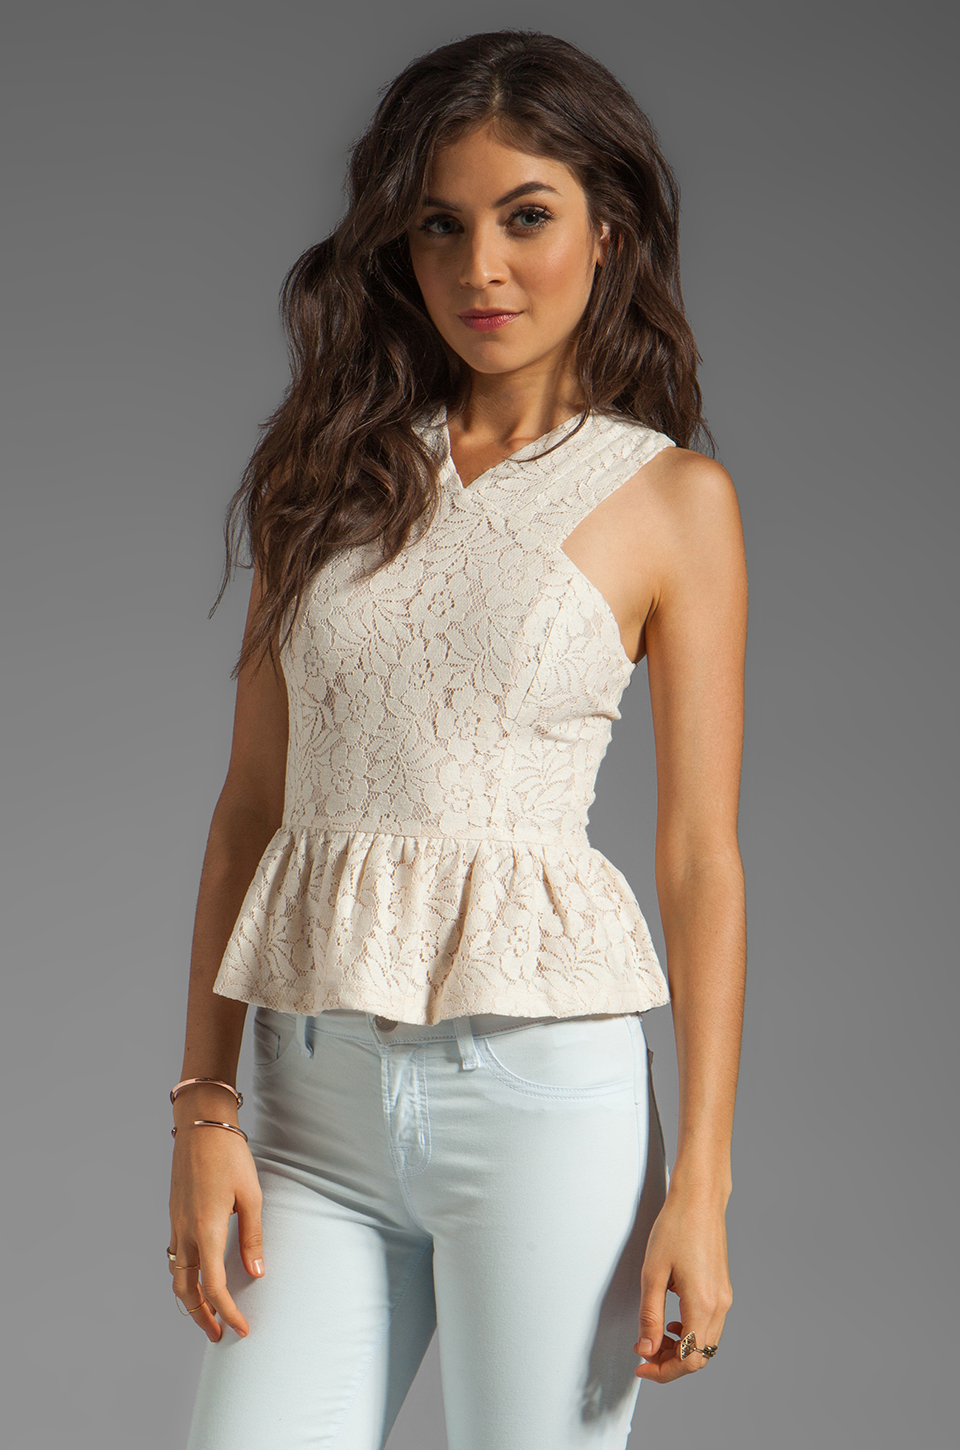 6 SHORE ROAD Lagoon Peplum Top in Coconut